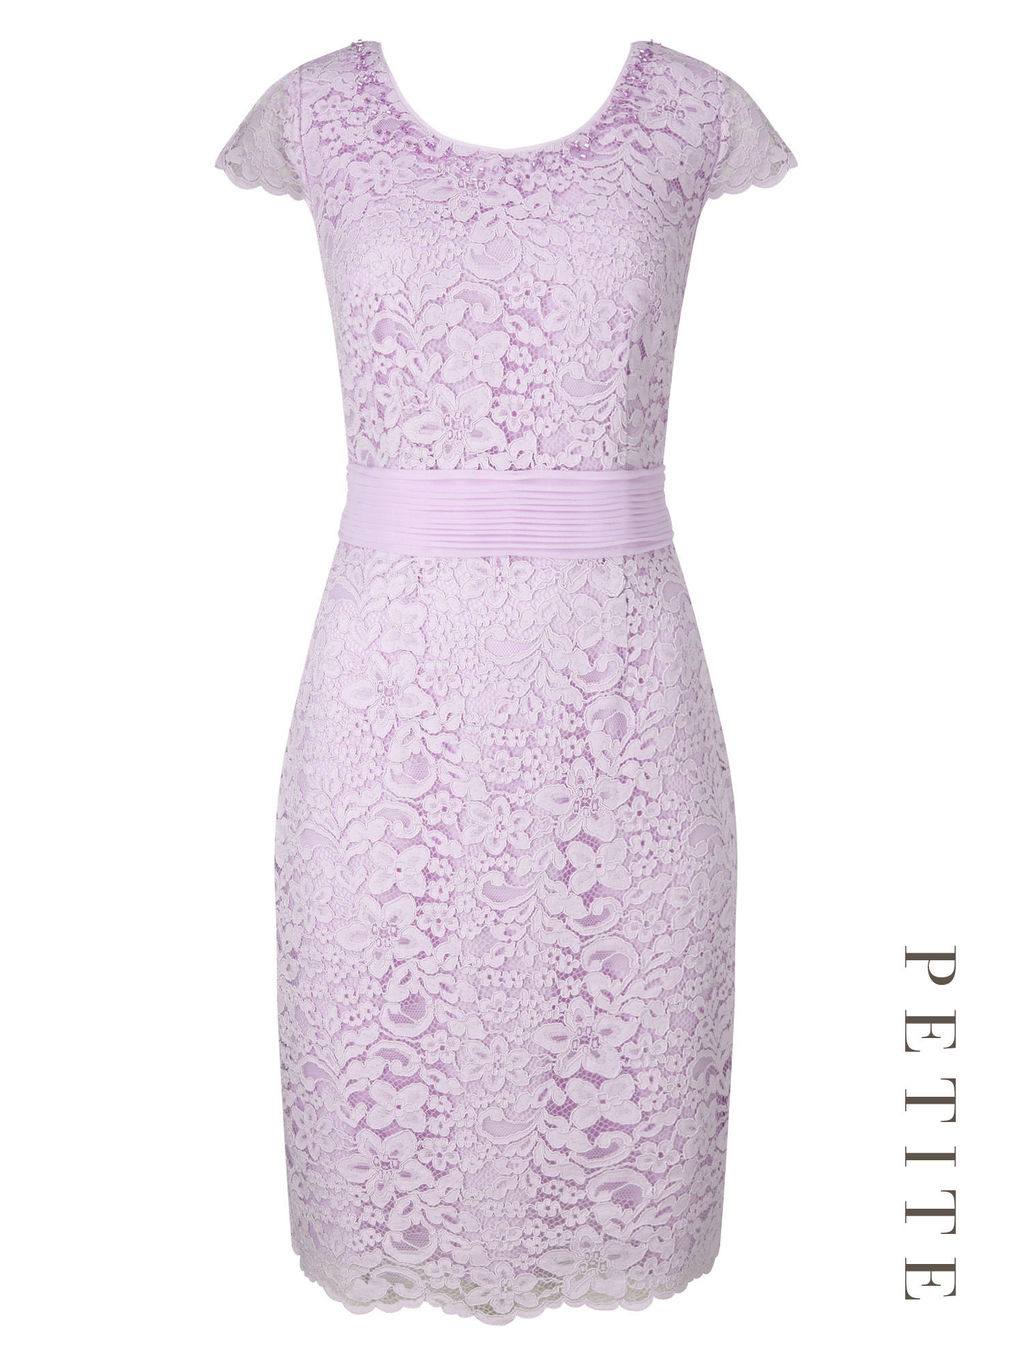 Petite Elegant Lace Dress - style: shift; neckline: round neck; sleeve style: capped; fit: tailored/fitted; predominant colour: lilac; occasions: evening, occasion; length: just above the knee; fibres: nylon - mix; sleeve length: short sleeve; texture group: lace; pattern type: fabric; pattern size: light/subtle; pattern: patterned/print; embellishment: lace; season: s/s 2016; wardrobe: event